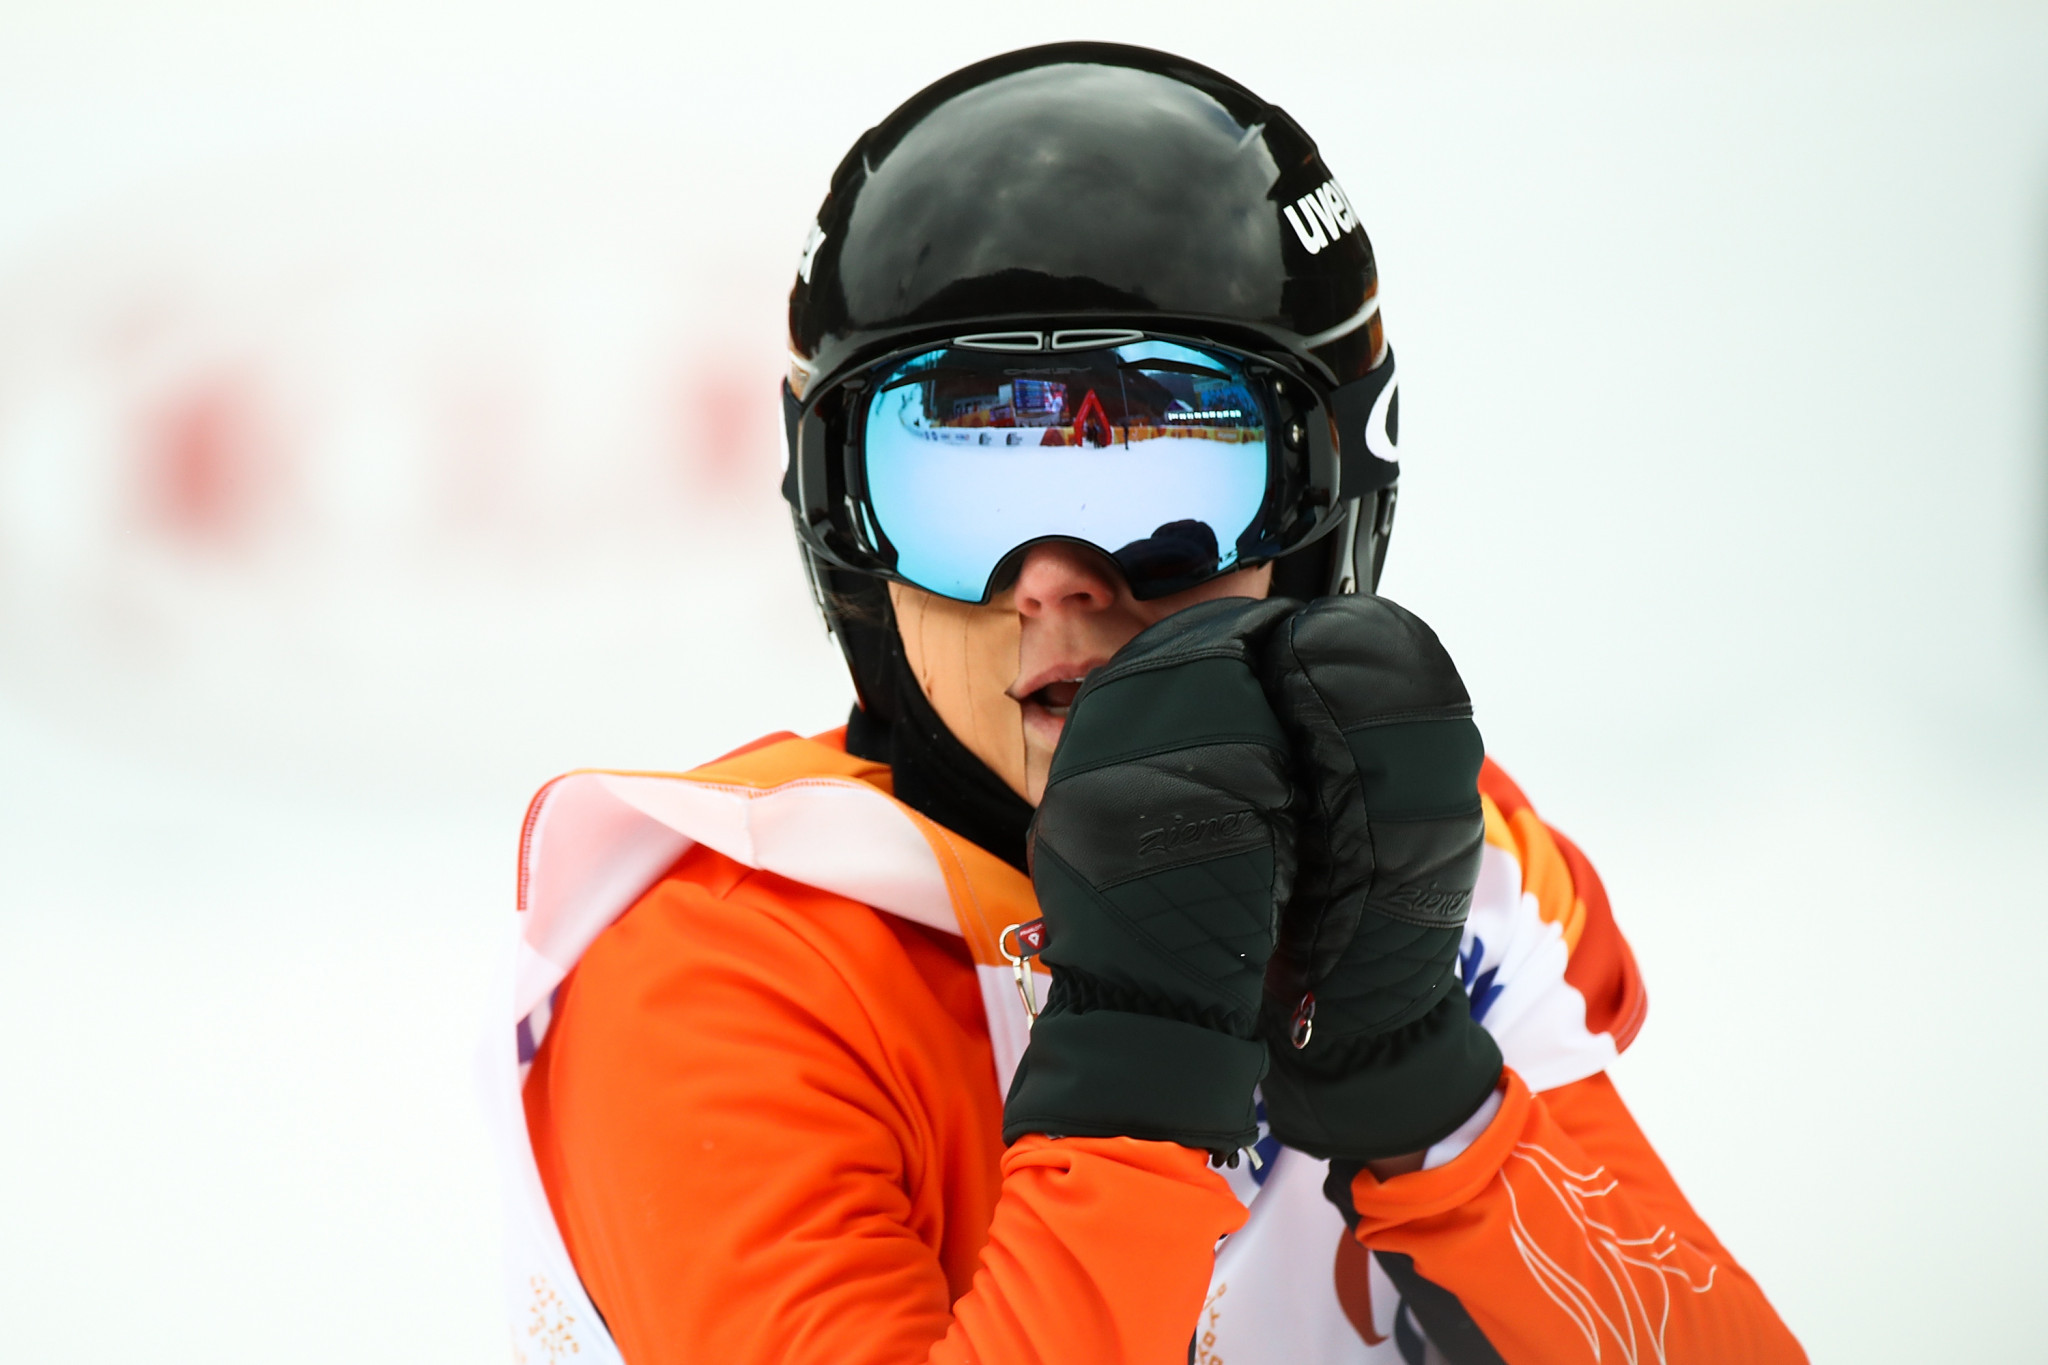 World champion Bunschoten wins on opening day of World Para Snowboard World Cup Finals in Klövsjö